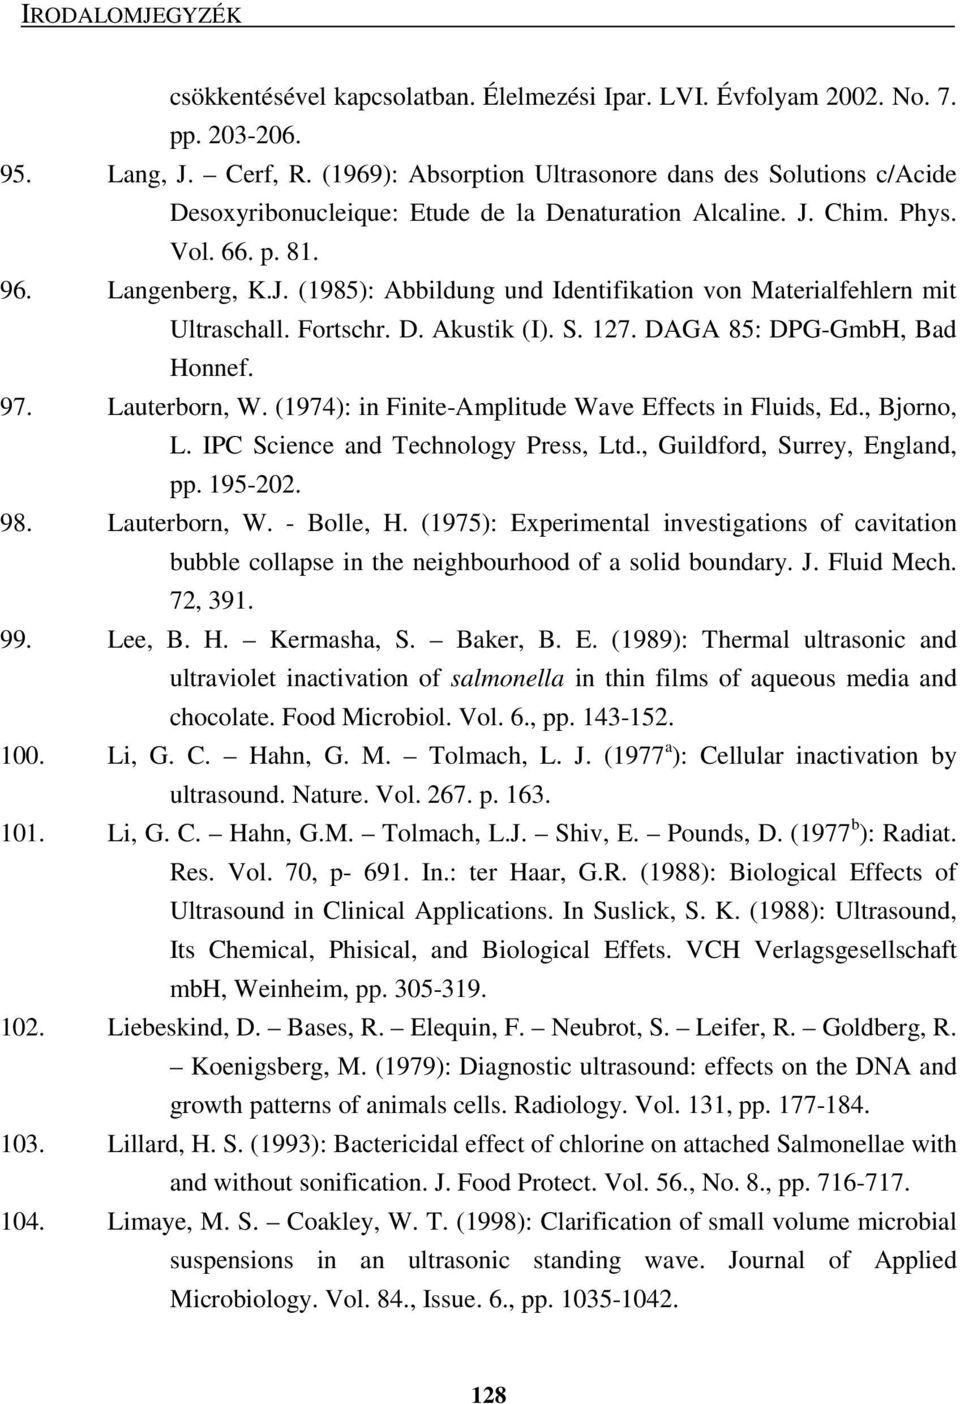 Fortschr. D. Akustik (I). S. 127. DAGA 85: DPG-GmbH, Bad Honnef. 97. Lauterborn, W. (1974): in Finite-Amplitude Wave Effects in Fluids, Ed., Bjorno, L. IPC Science and Technology Press, Ltd.